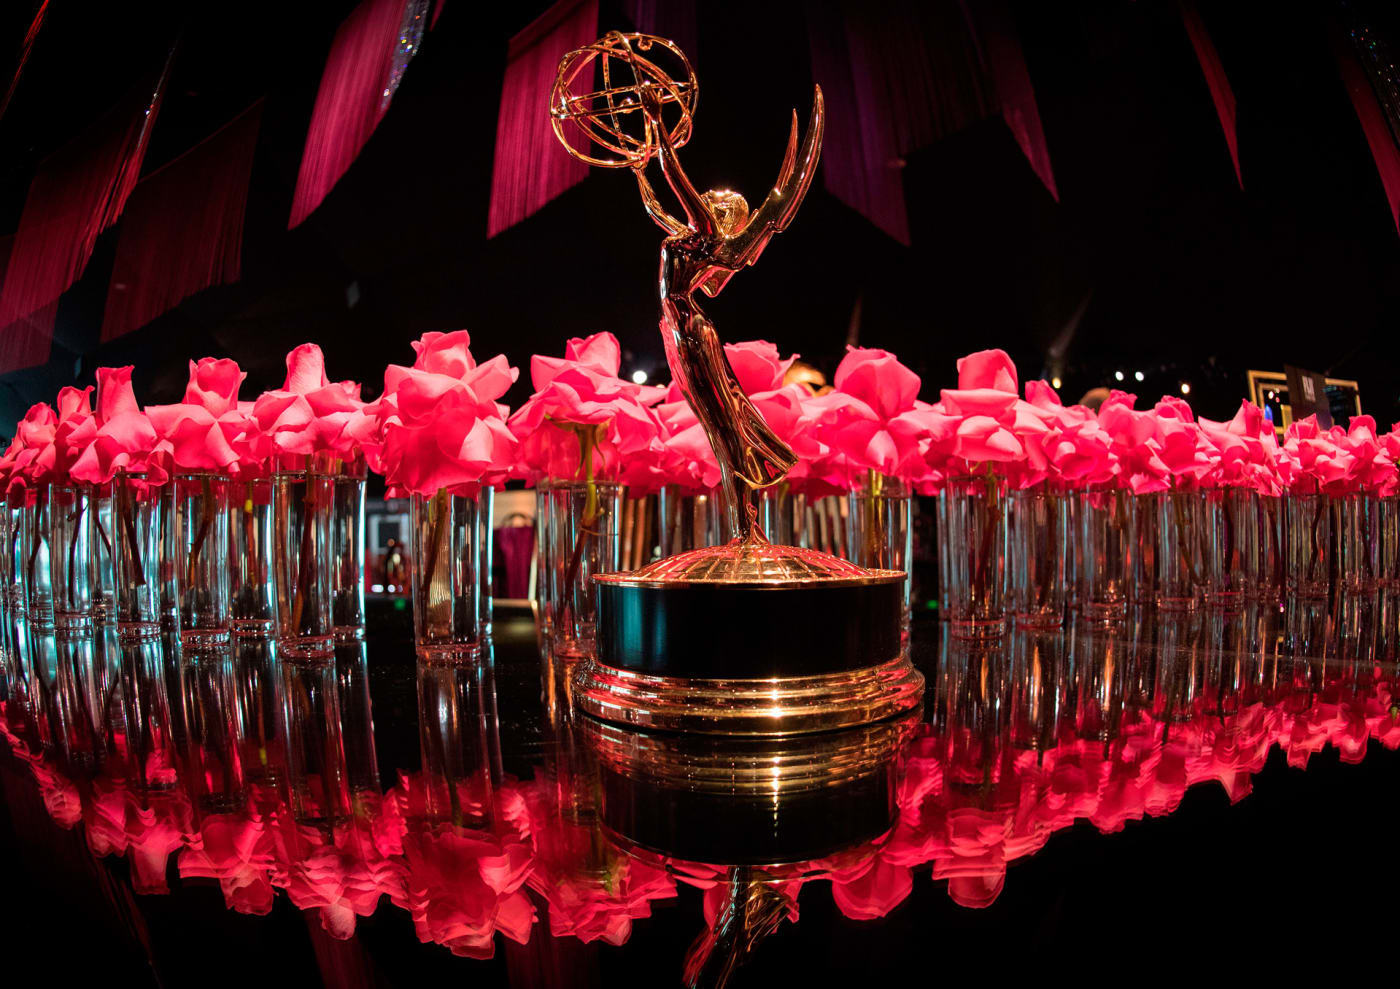 An Emmy statue at the 71st Emmy Awards Governors Ball press preview